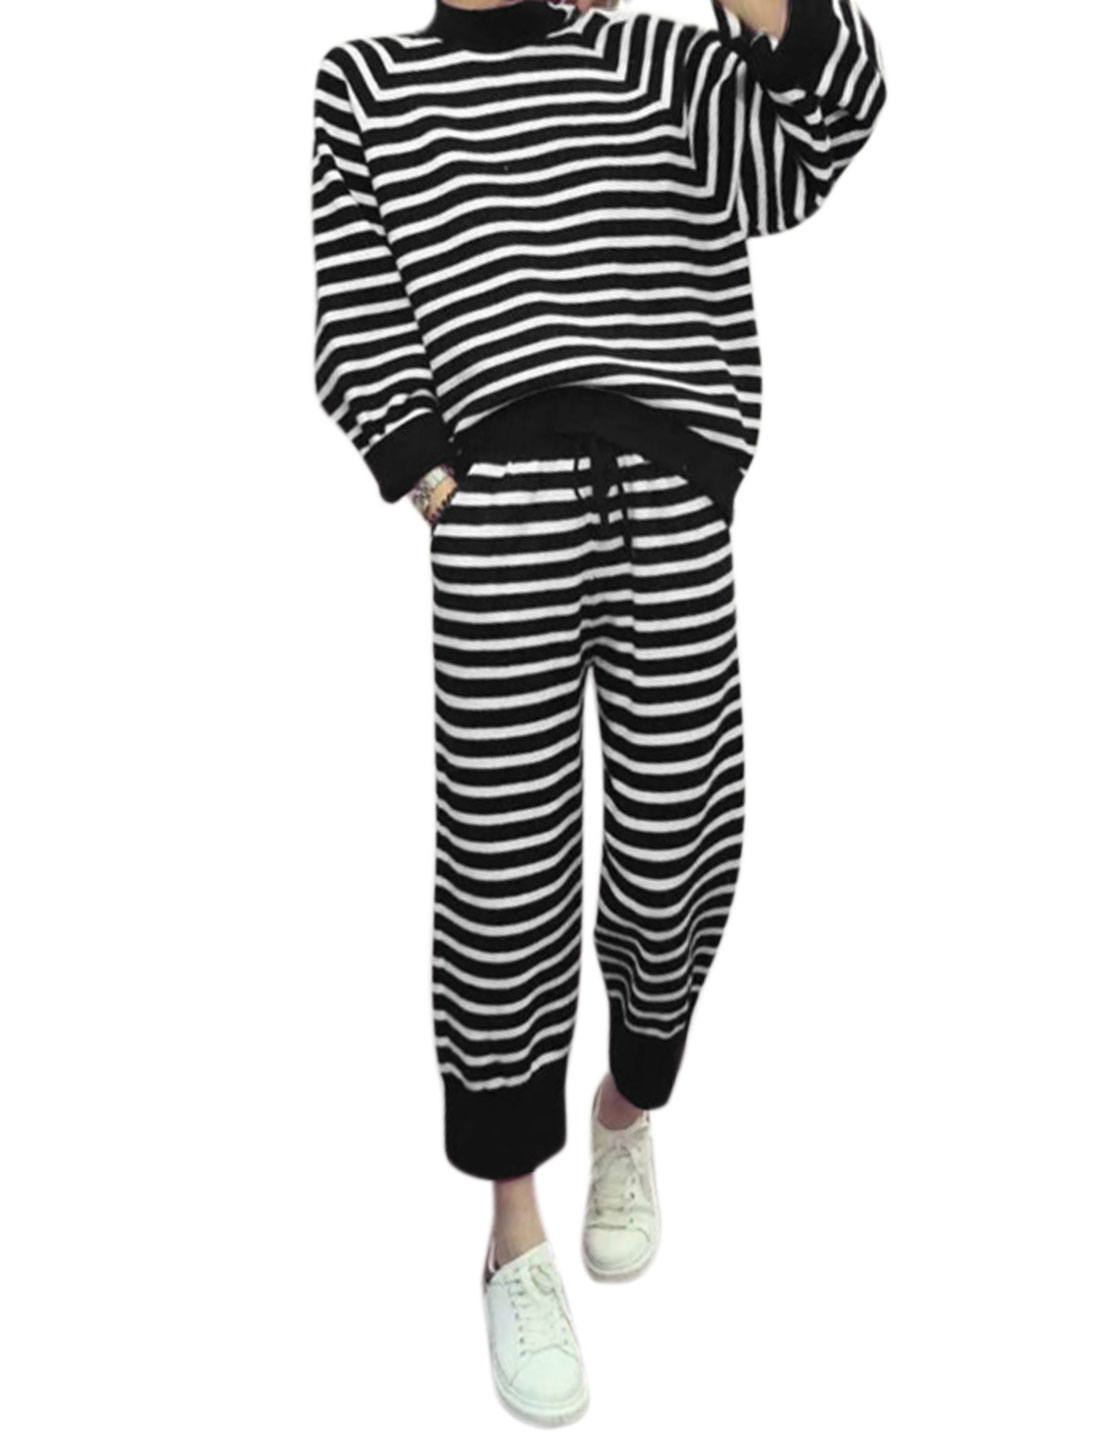 Women Zippered Sides Stripes Top w Drawstring Cropped Jogger Pants Sets Black XS